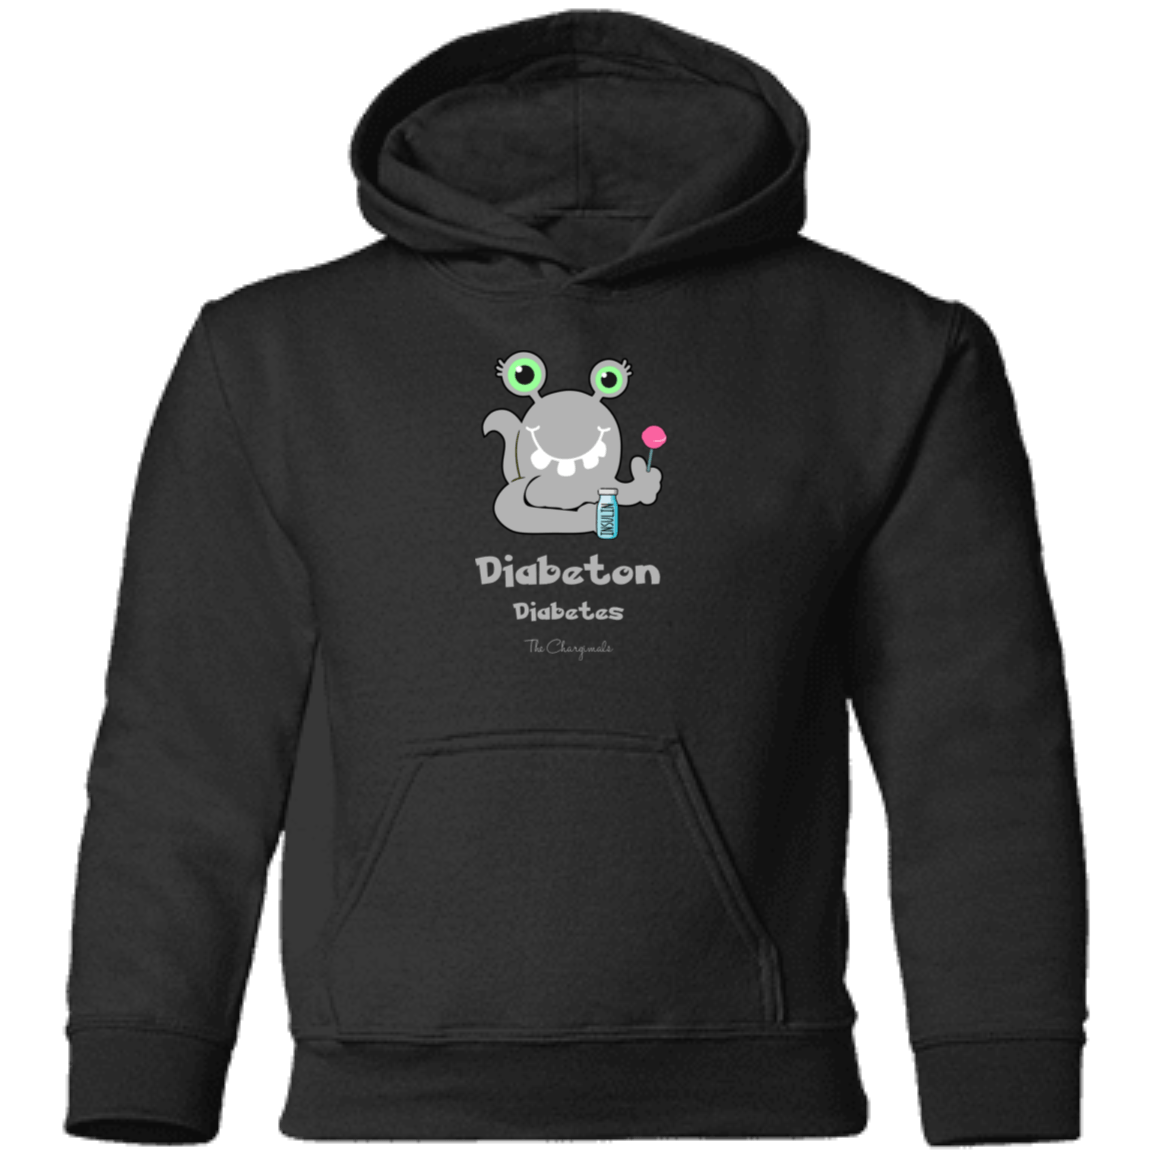 Beets the Diabetes Monster Kids Shirts and Hoodies